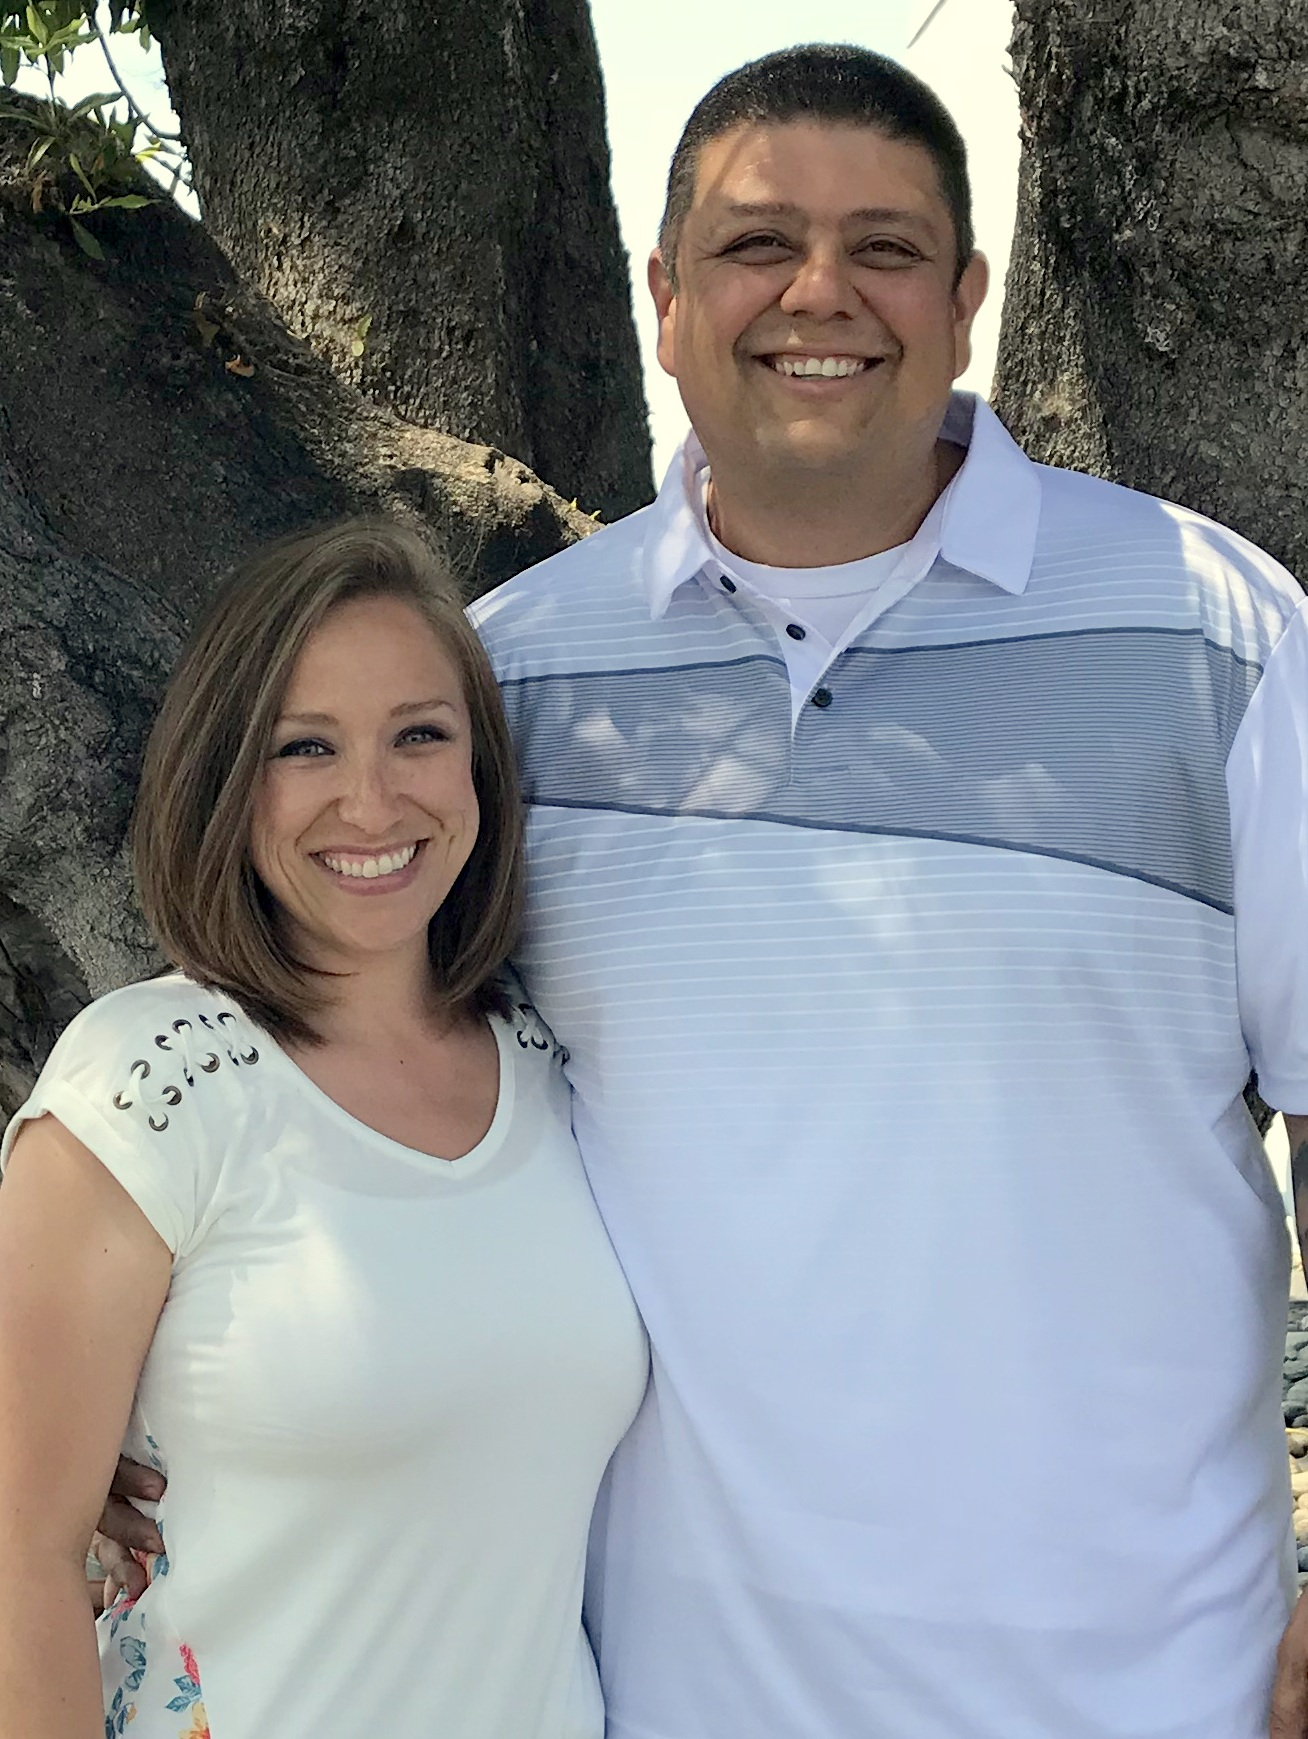 Steven and Sophia Gonzales are happy after enjoying recovery from alcoholism as a couple.